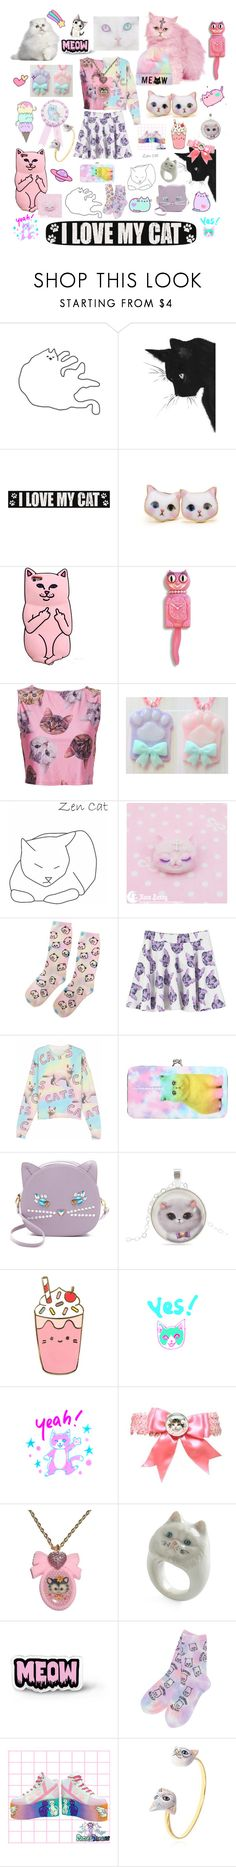 """""""You call me crazy, but my cats call me mom"""" by lolitaiopi ❤ liked on Polyvore featuring Sixtrees, Hot Topic, Pusheen, WithChic, Patricia Chang, Nach, cats, pastel, kawaii and harajuku"""